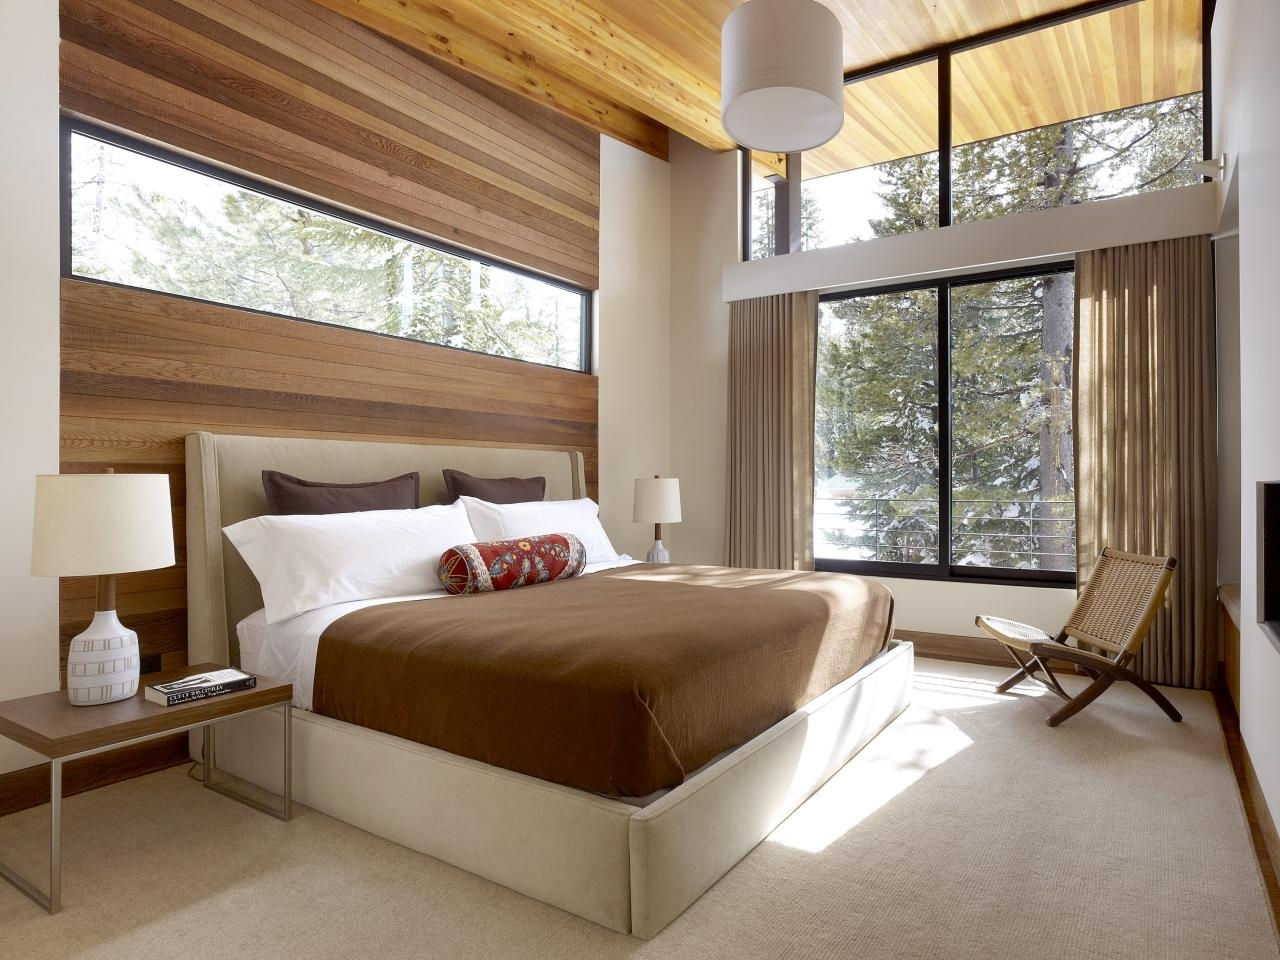 Bedroom | Behind Headboard Wood Wall Accent – Contrast Way Inside Best And Newest Wall Accents Behind Bed (View 5 of 15)